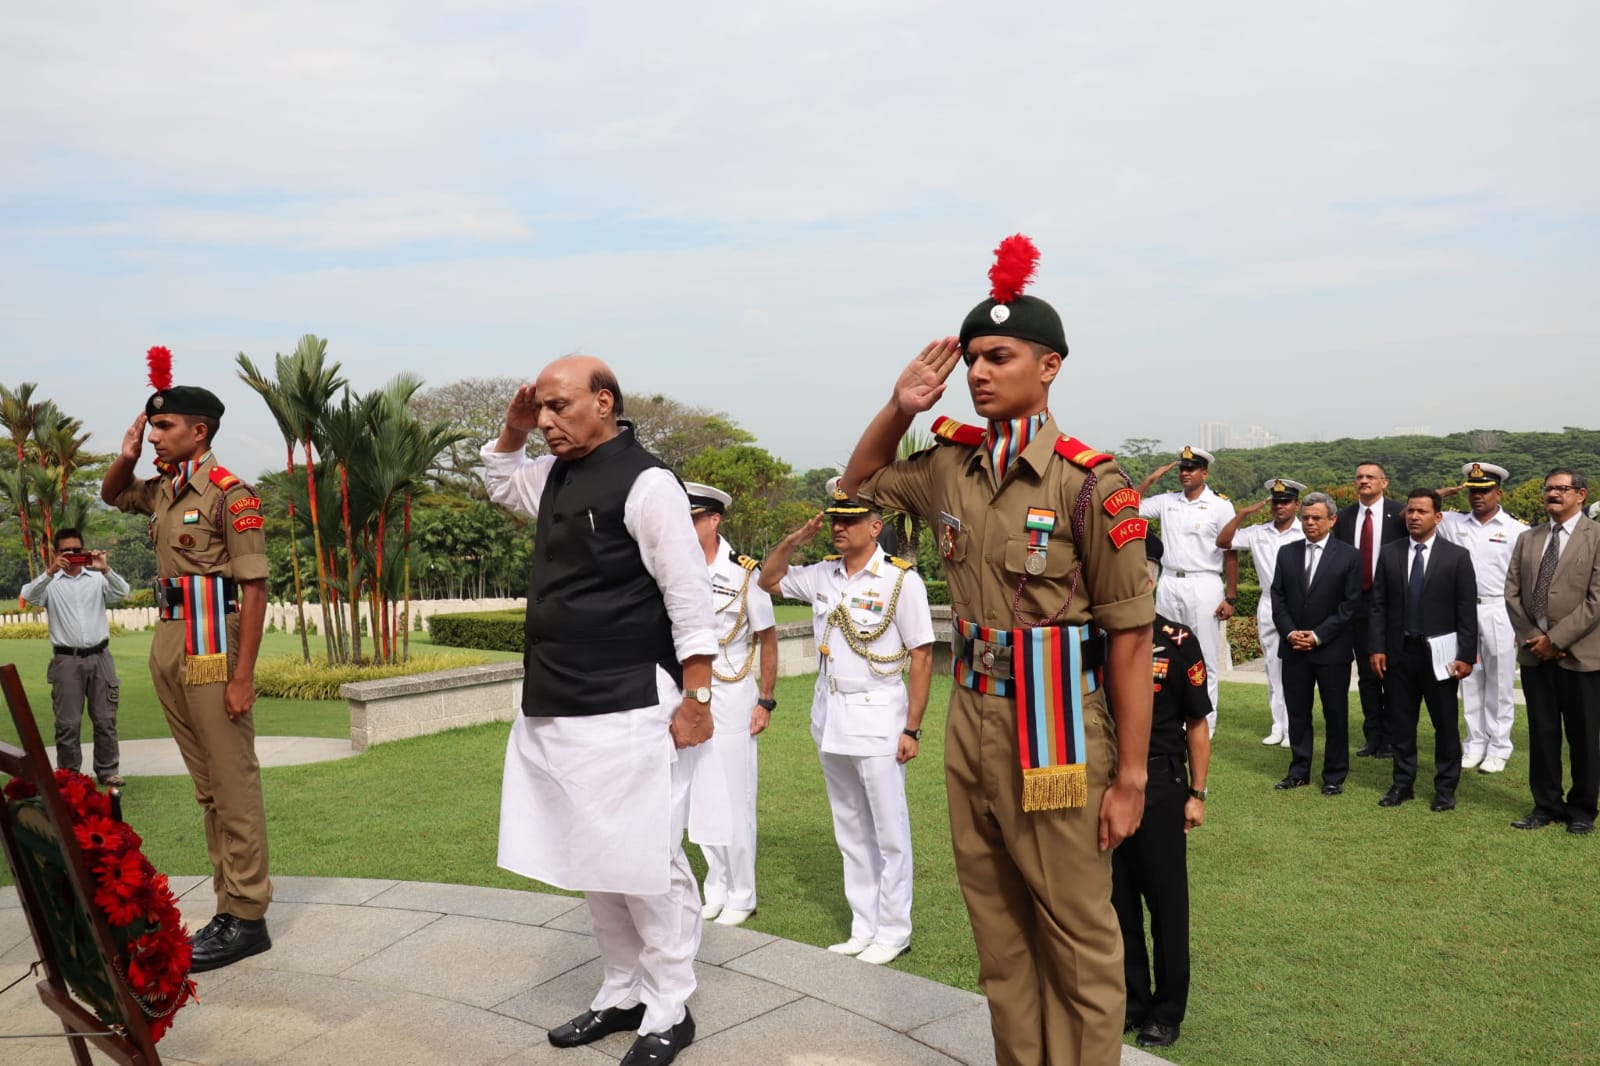 Rajnath Singh at the Kranji War Memorial in Singapore paid tributes to those men and women who laid down their lives in the line of duty during the Second World War. Photo courtesy: HCI Singapore